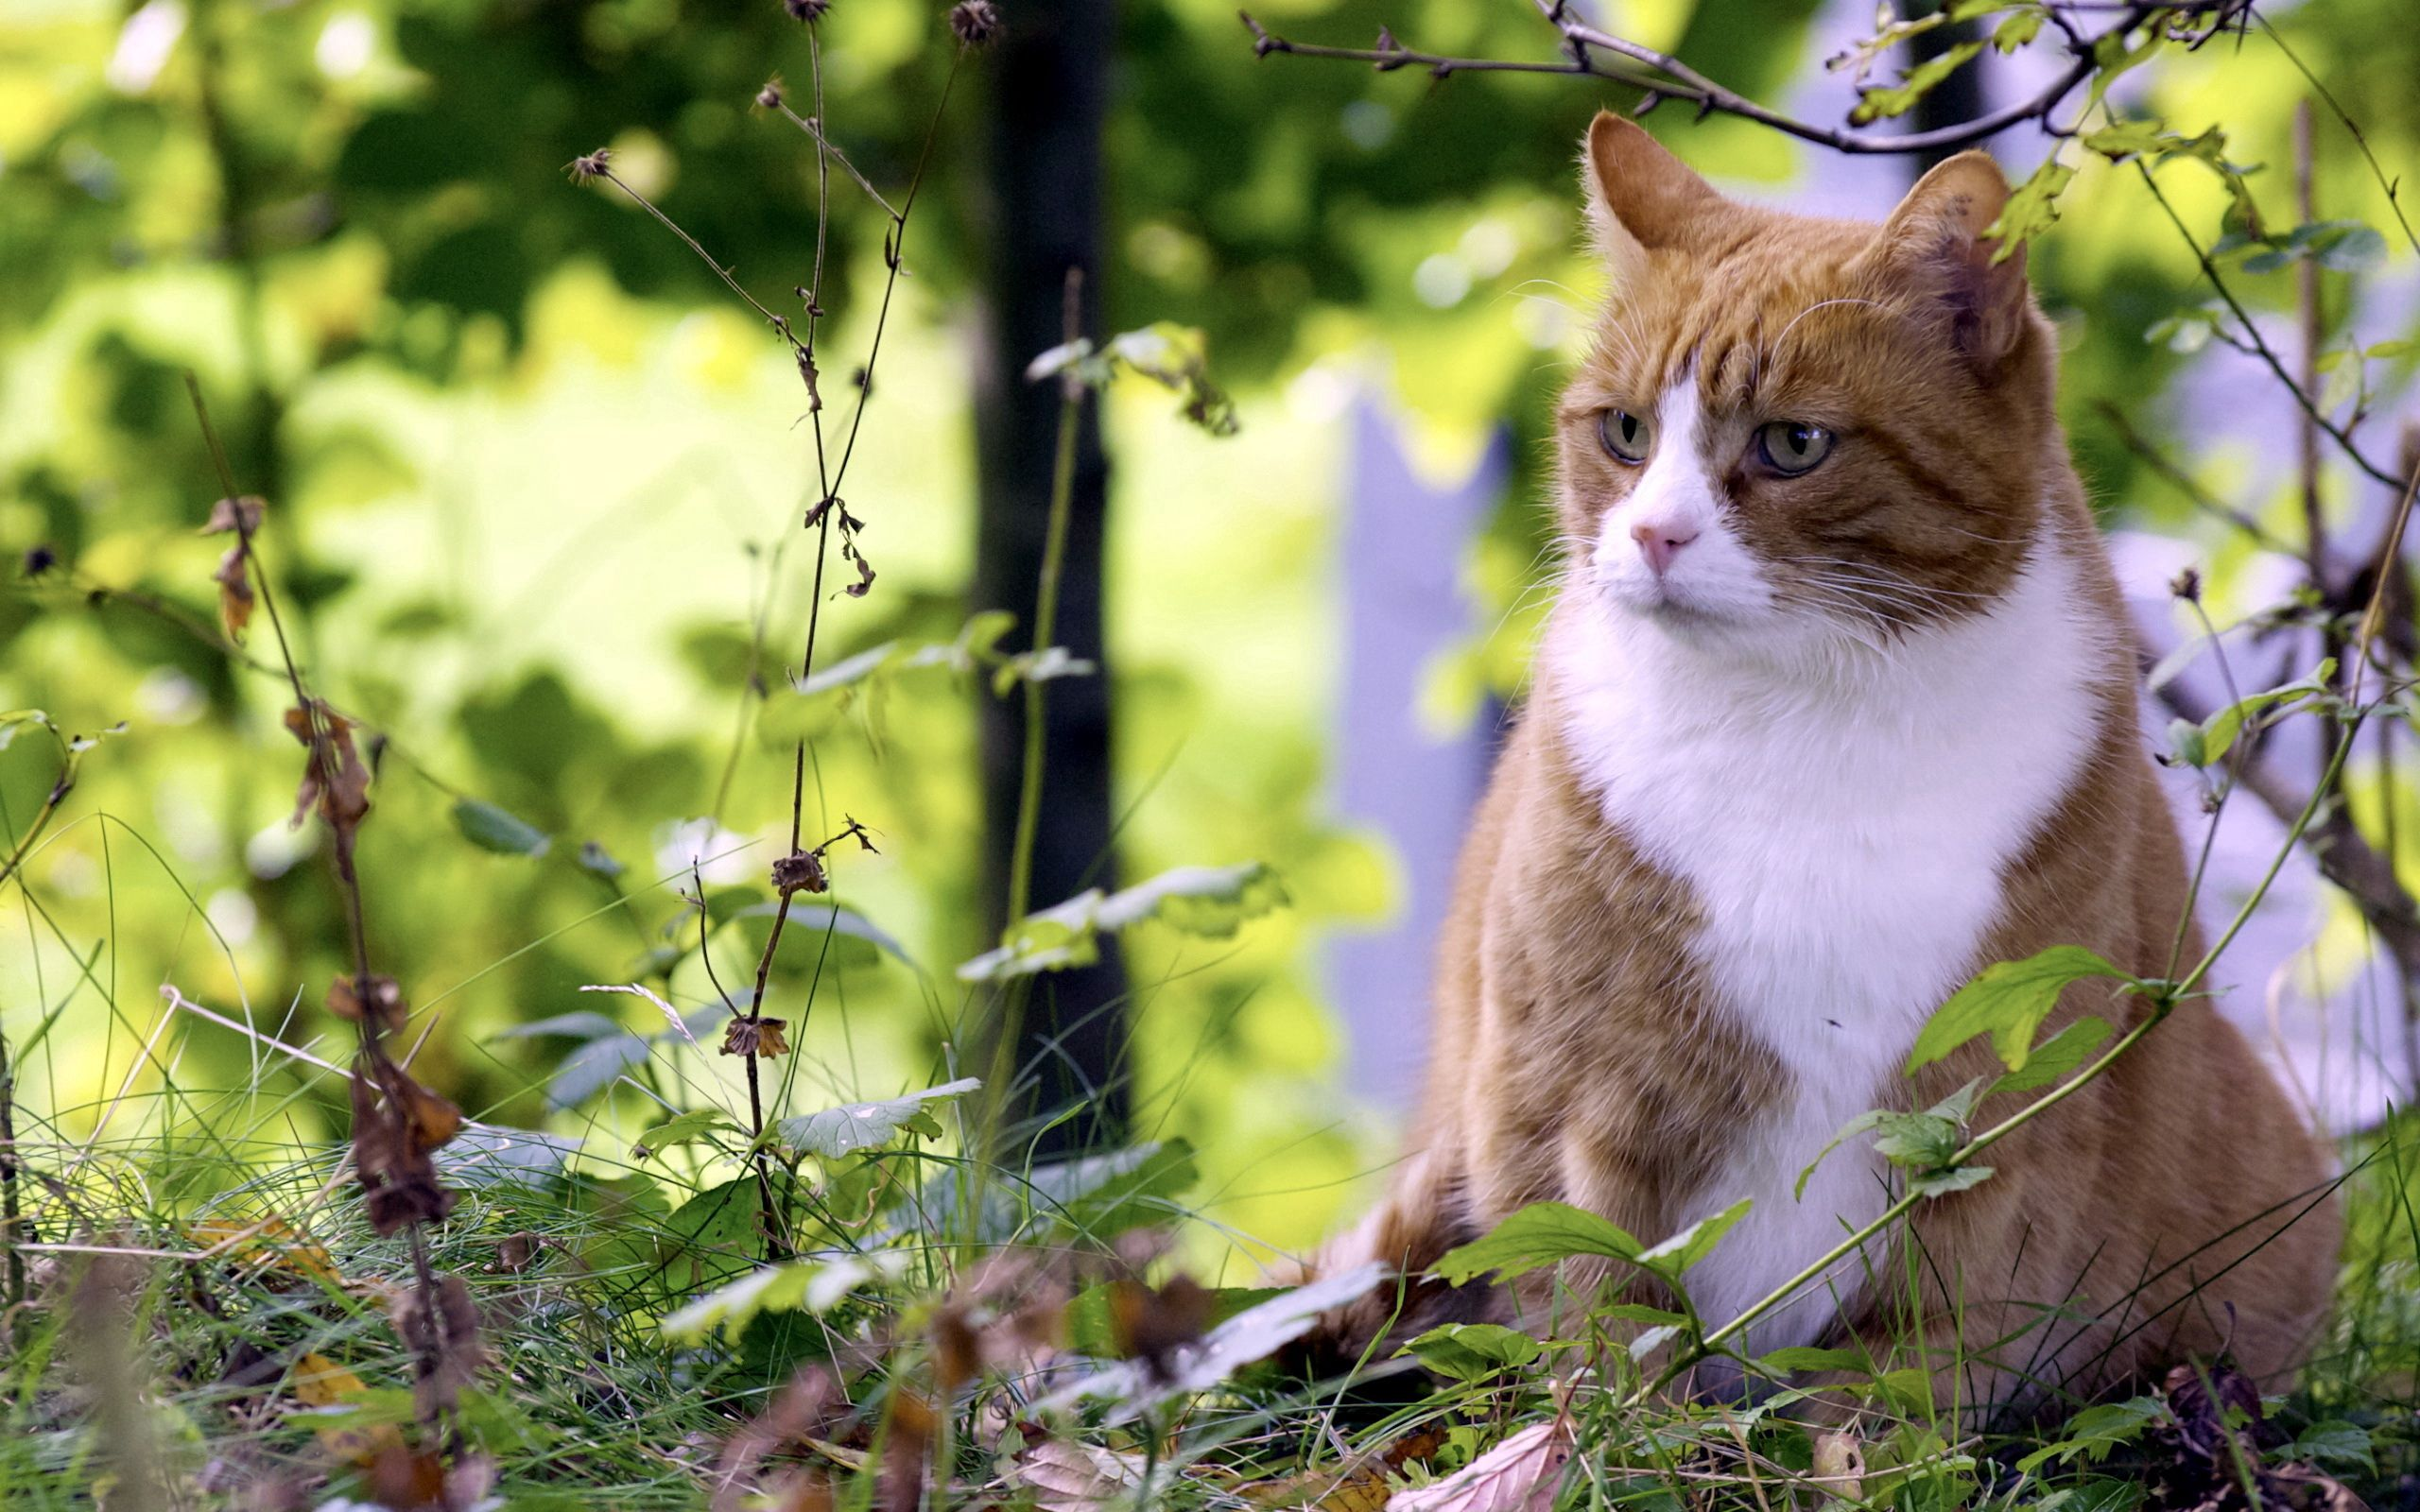 130706 download wallpaper Animals, Cat, Grass, Hunting, Hunt, Spotted, Spotty screensavers and pictures for free